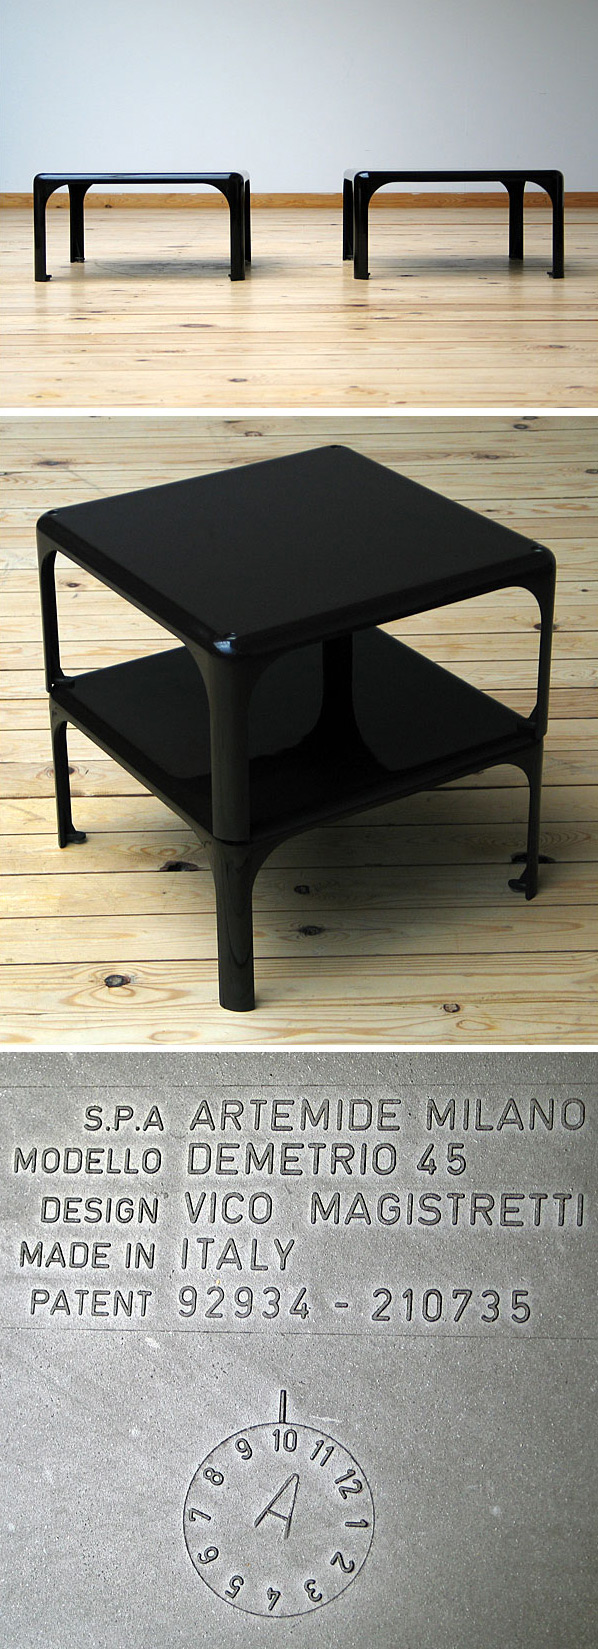 2 side tables Demetrio 45 Vico Magistretti Artemide Large